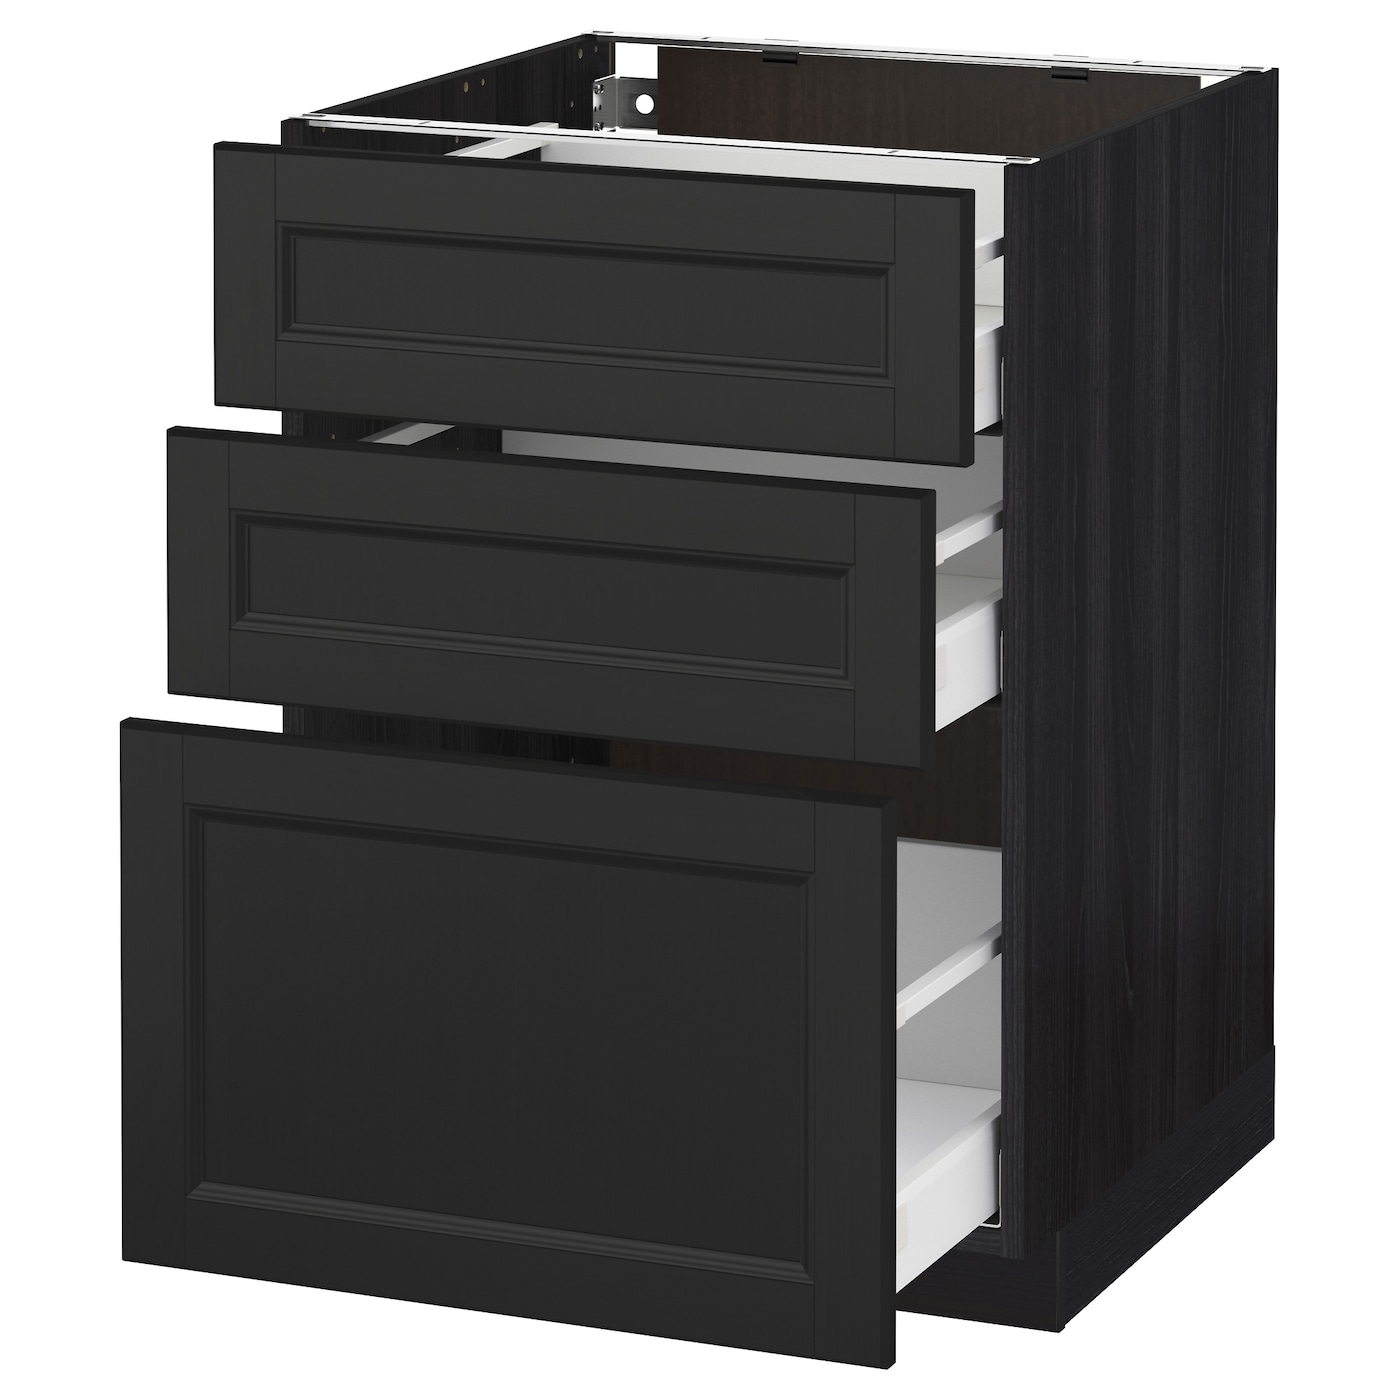 Ikea Kitchen Laxarby: METOD/MAXIMERA Base Cabinet With 3 Drawers Black/laxarby